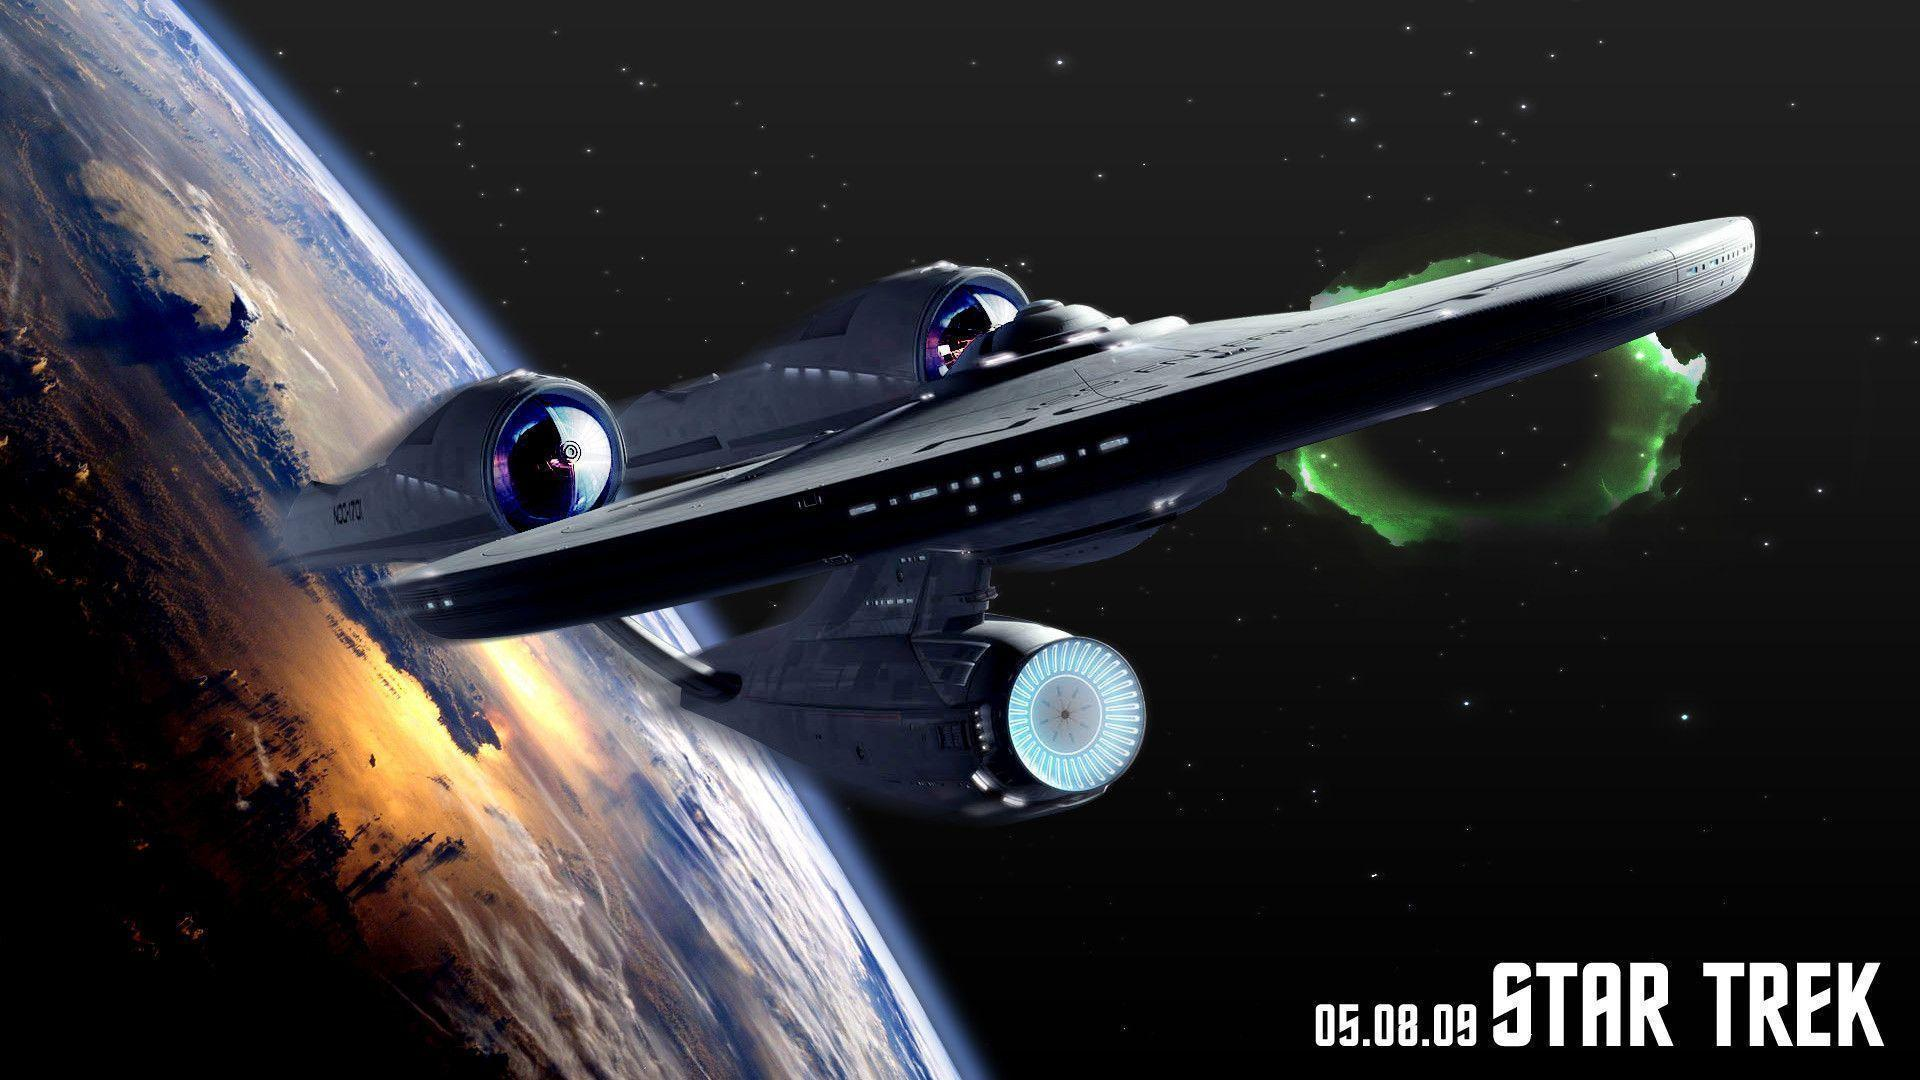 Star Trek Wallpaper Free 46525 HD Pictures | Top Wallpaper Desktop